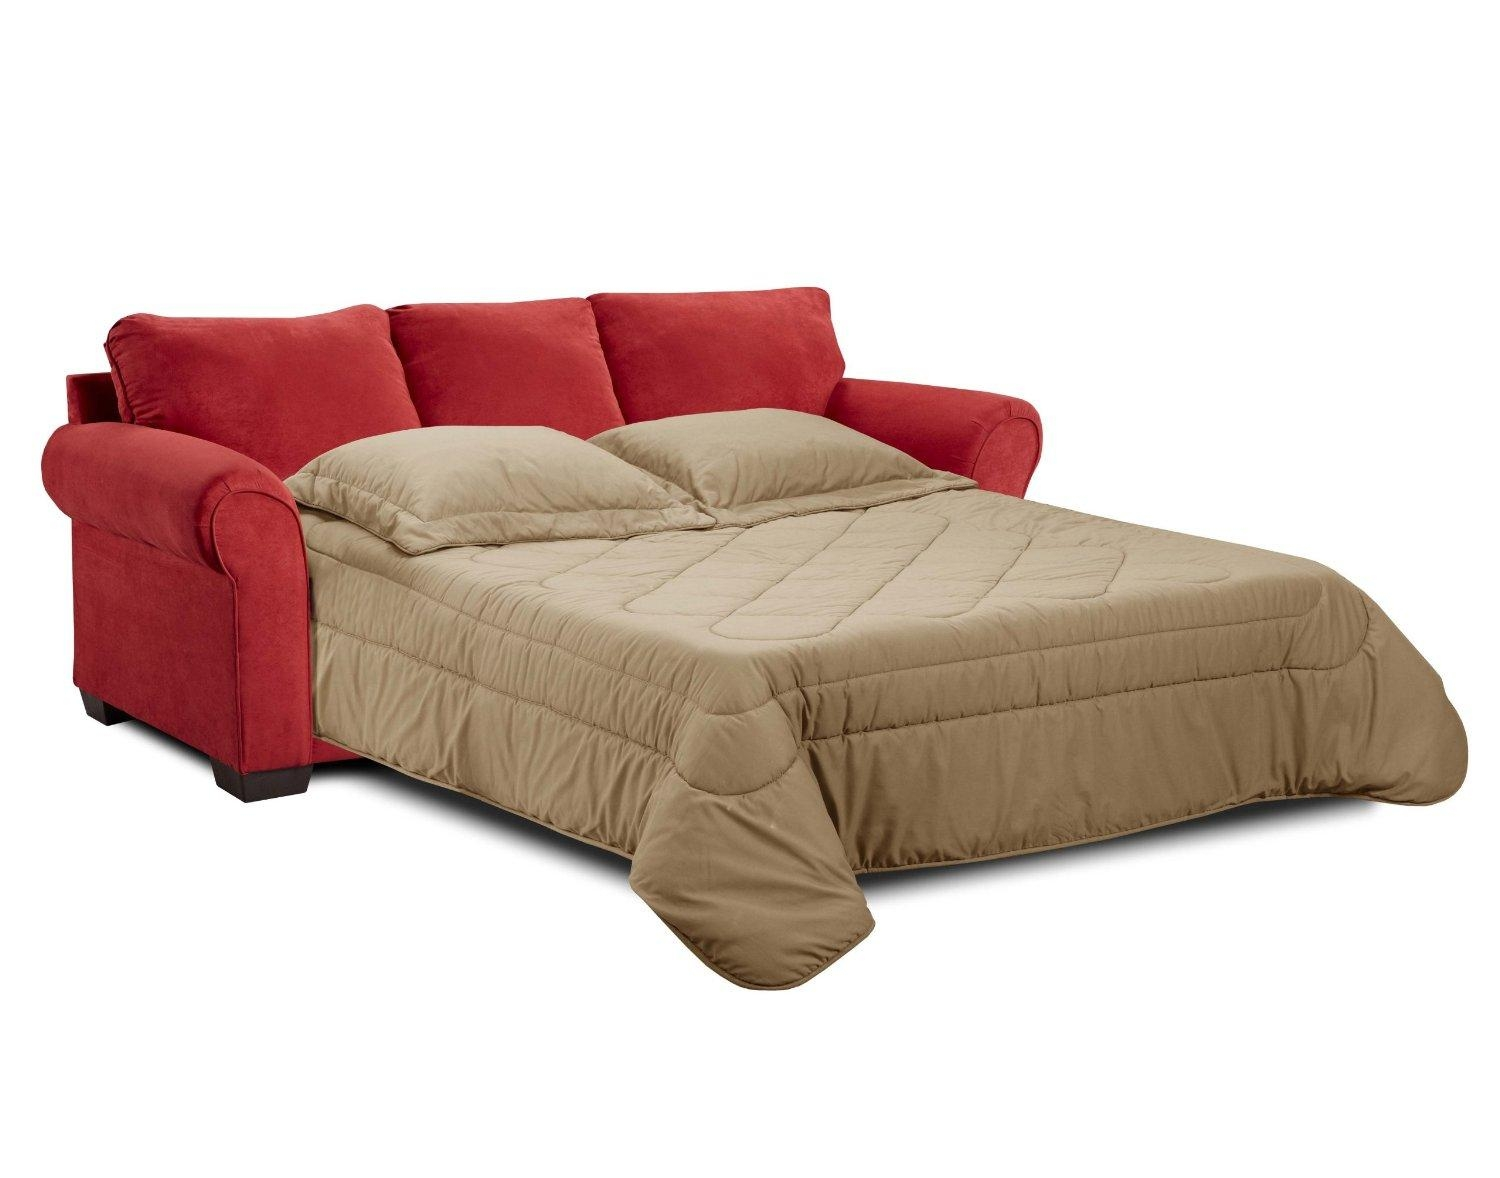 Sofas Center : Queen Size Sofa Sleeper Mattress Covers For Beds With Sheets For Sofa Beds Mattress (Image 16 of 20)